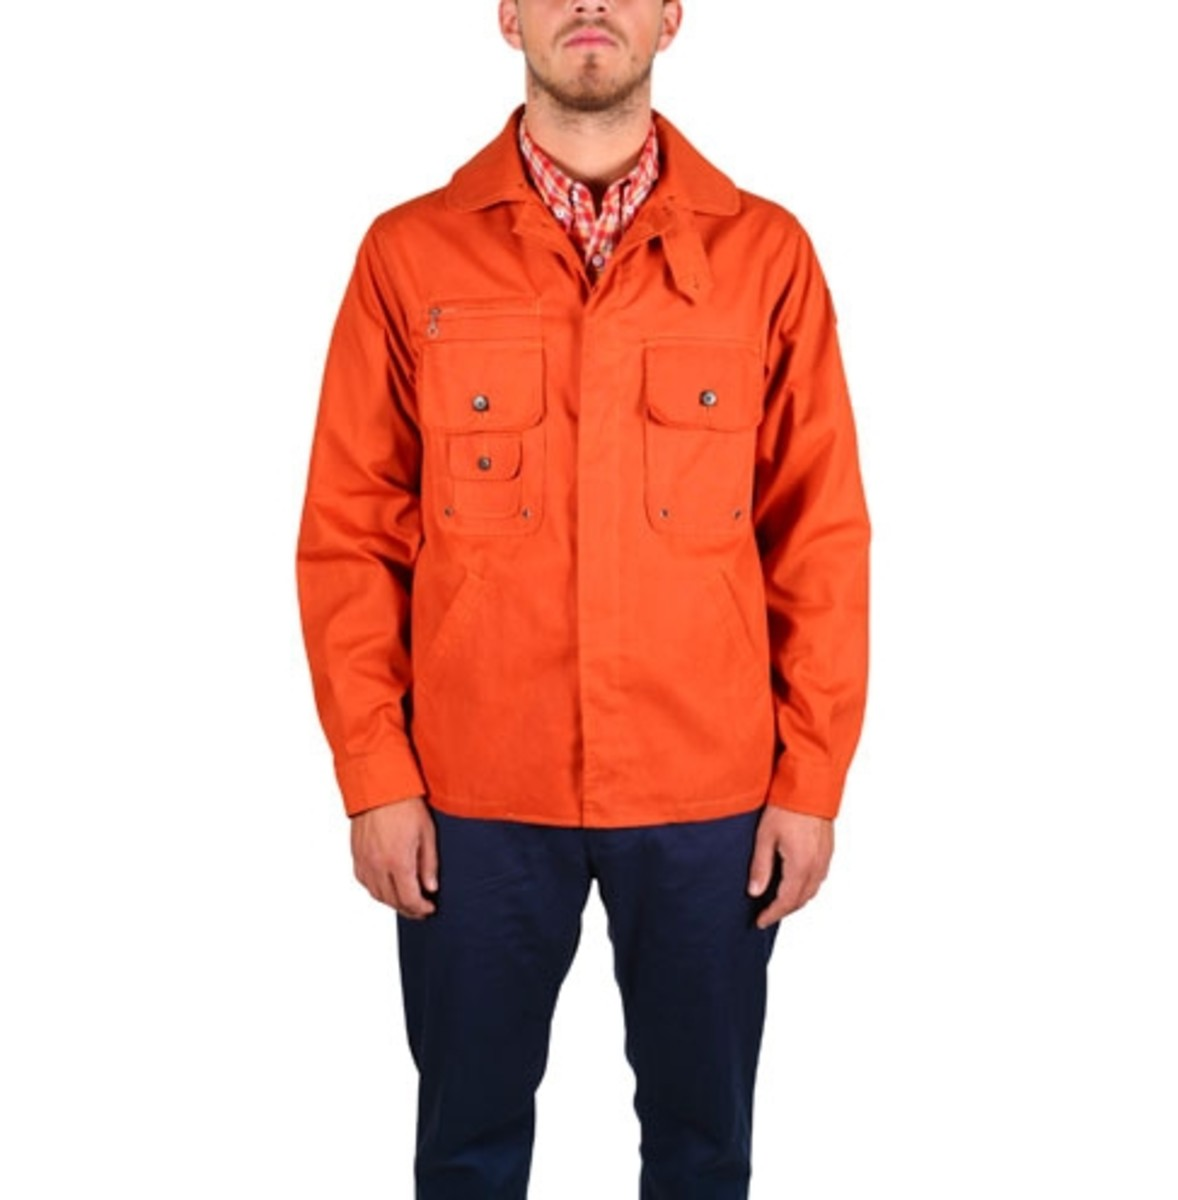 Penfield SS2011 Jackets 50